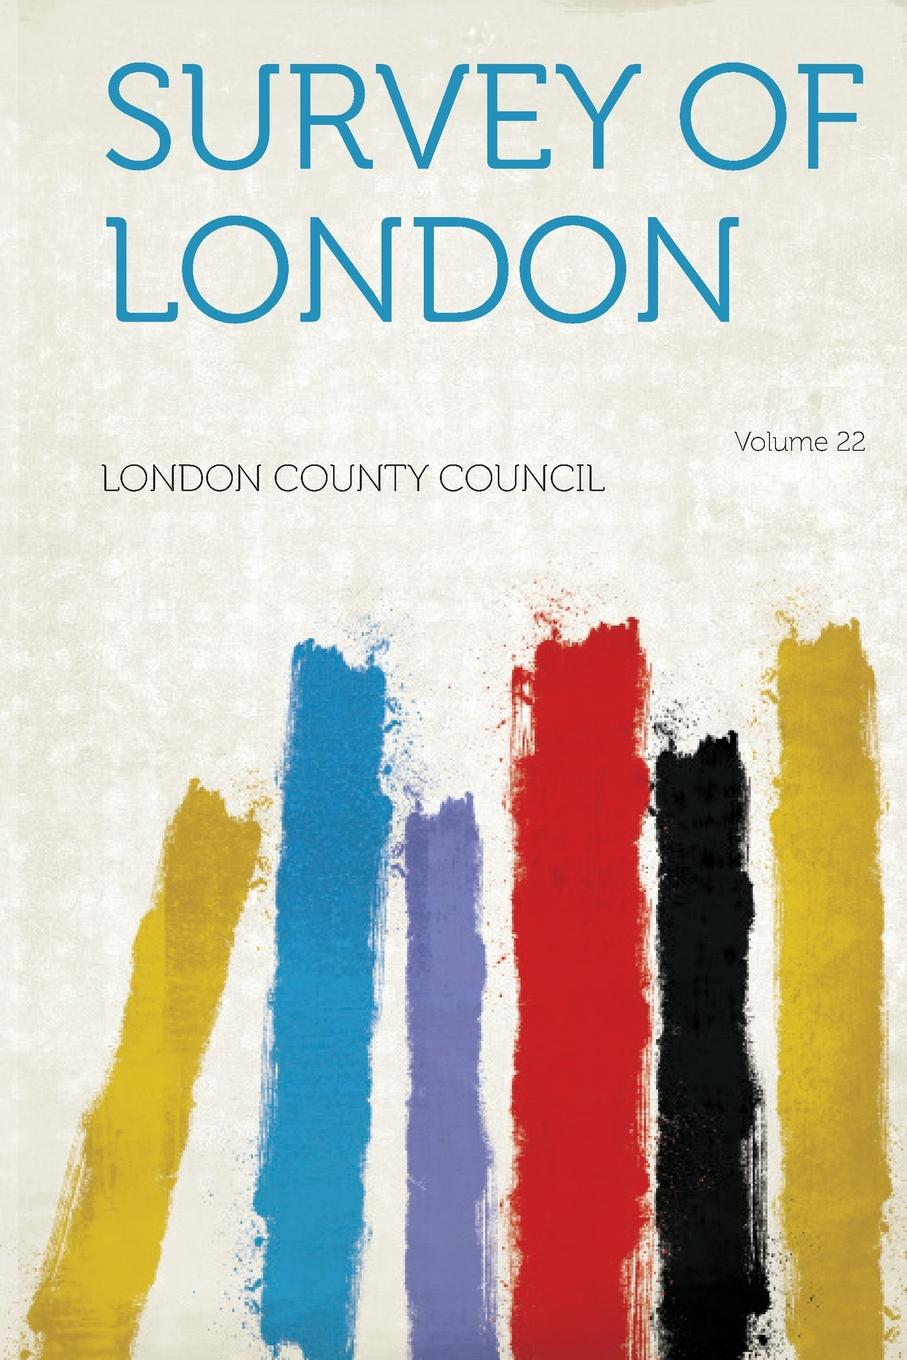 London County Council Survey of London Volume 22